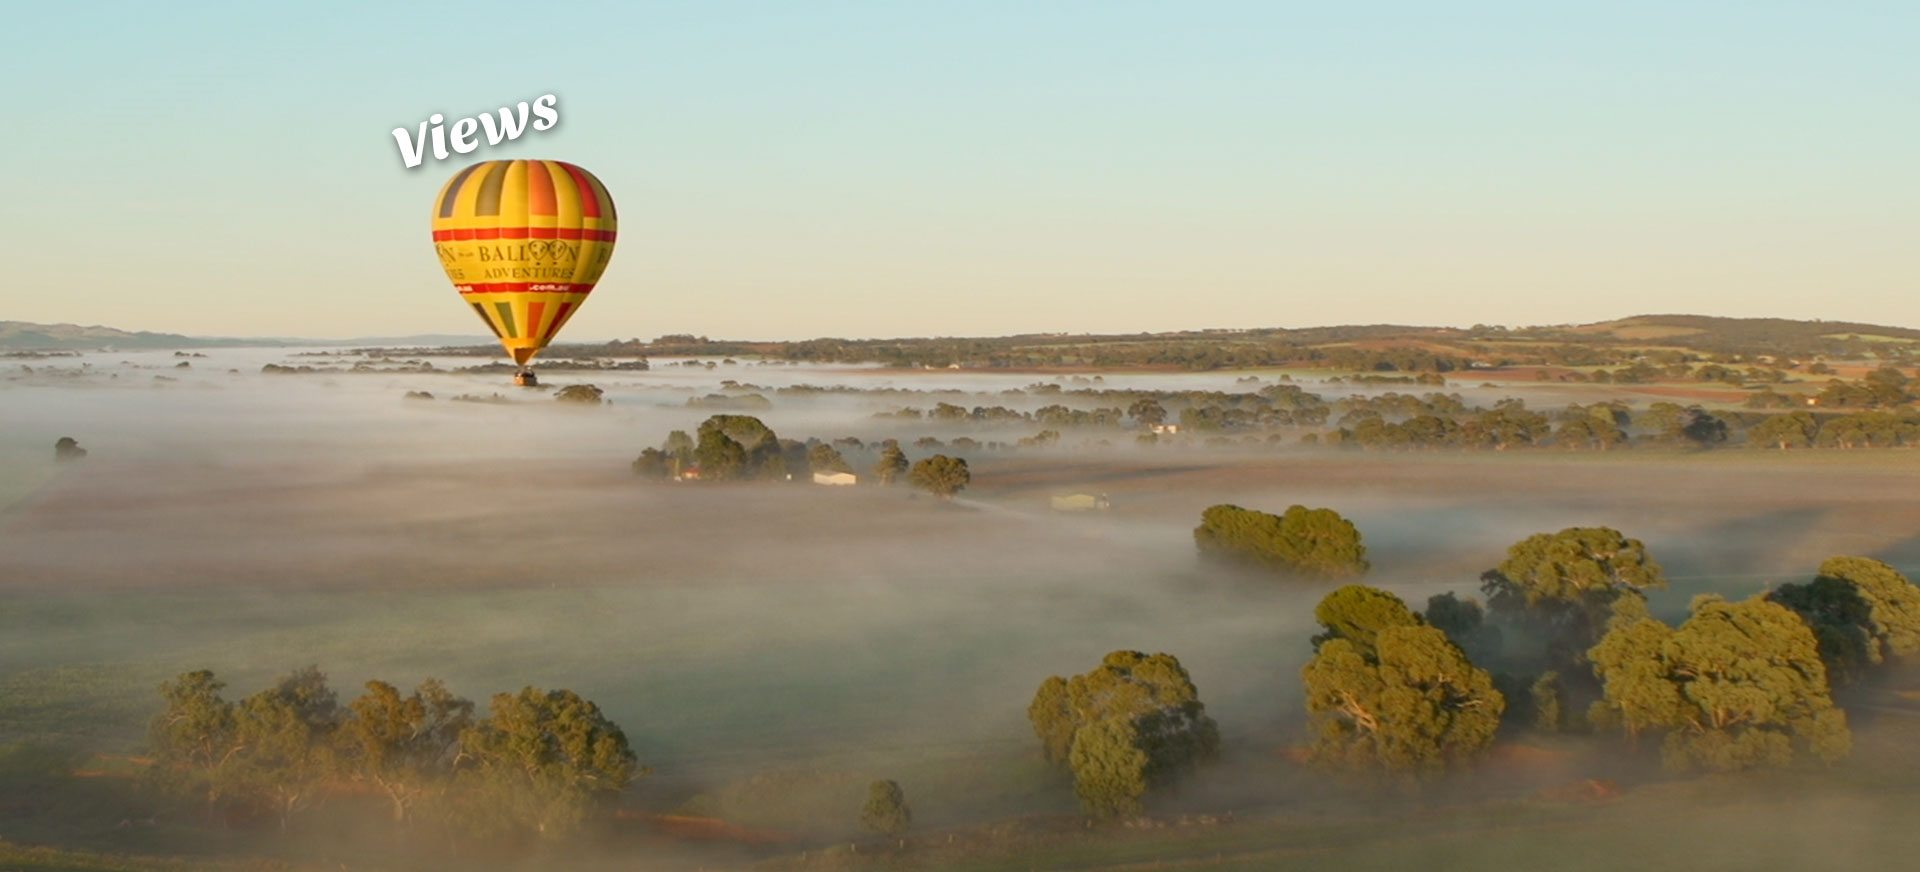 balloon-adventures-hot-air-balloon-flights-over-the-barossa-valley-flight-step-13